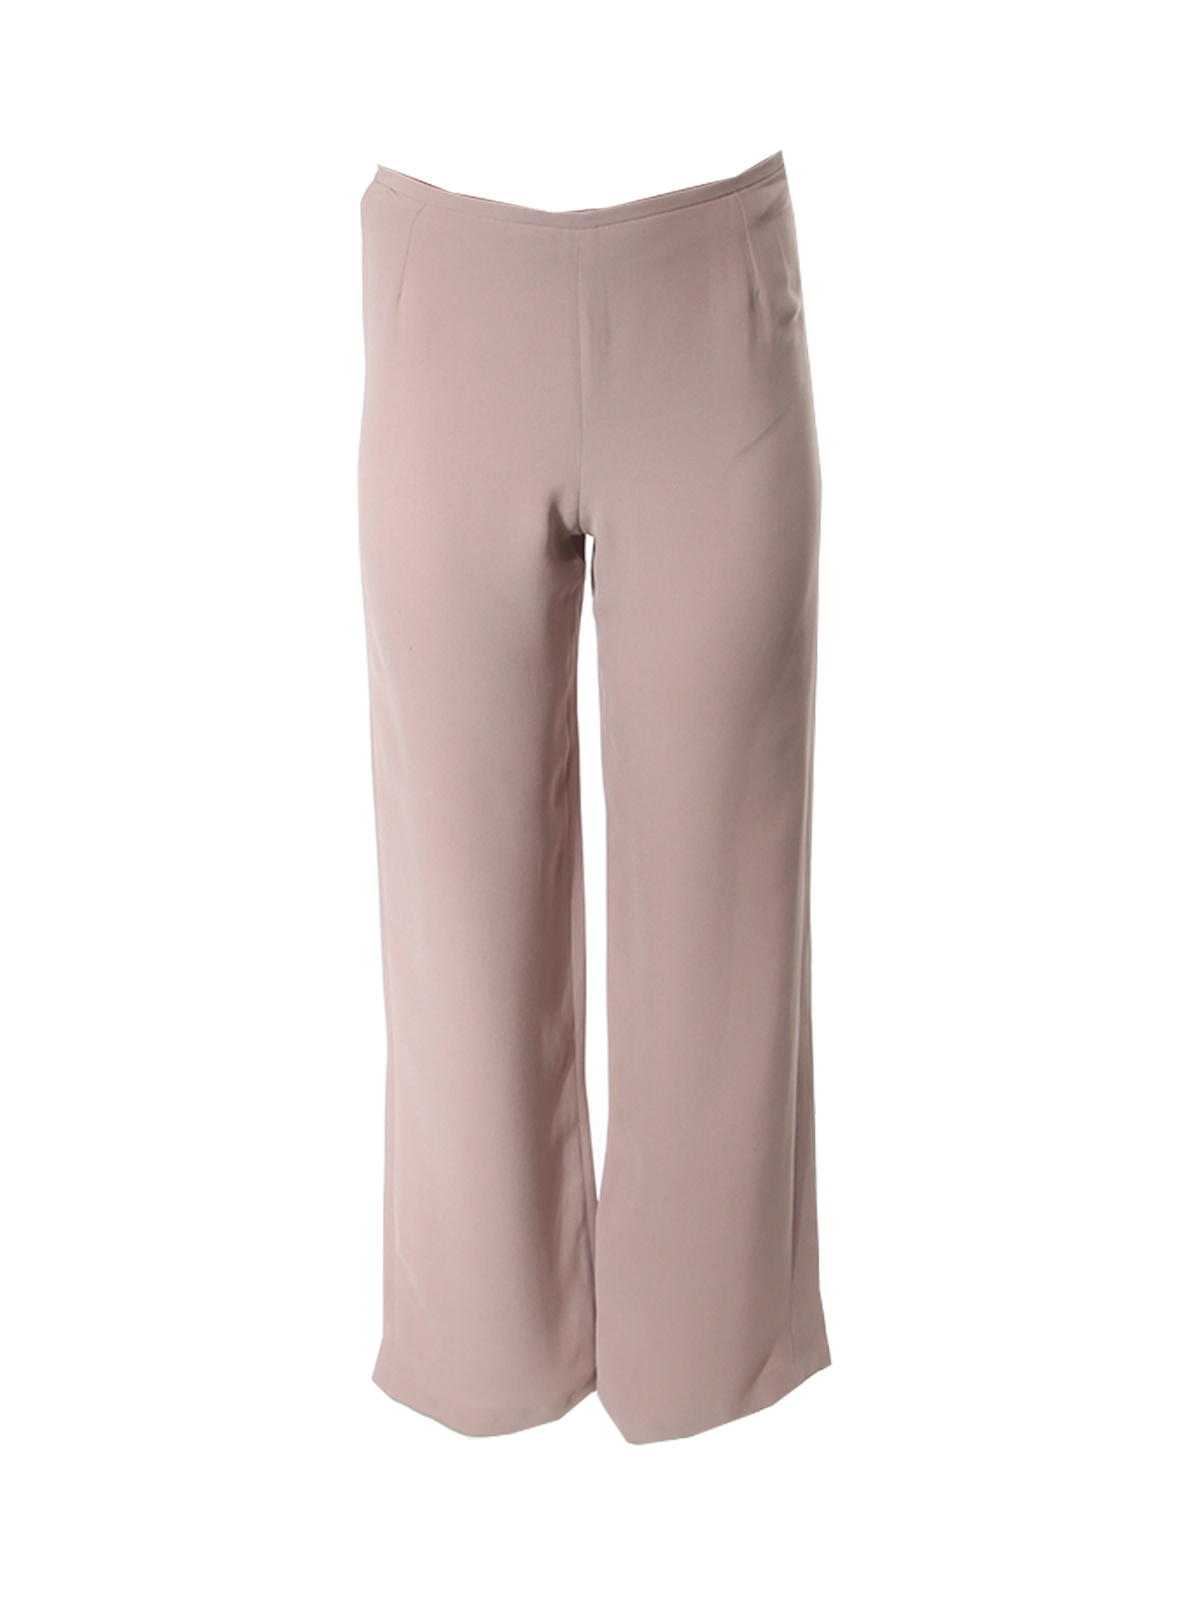 Sand High Waist Wide Leg Pants